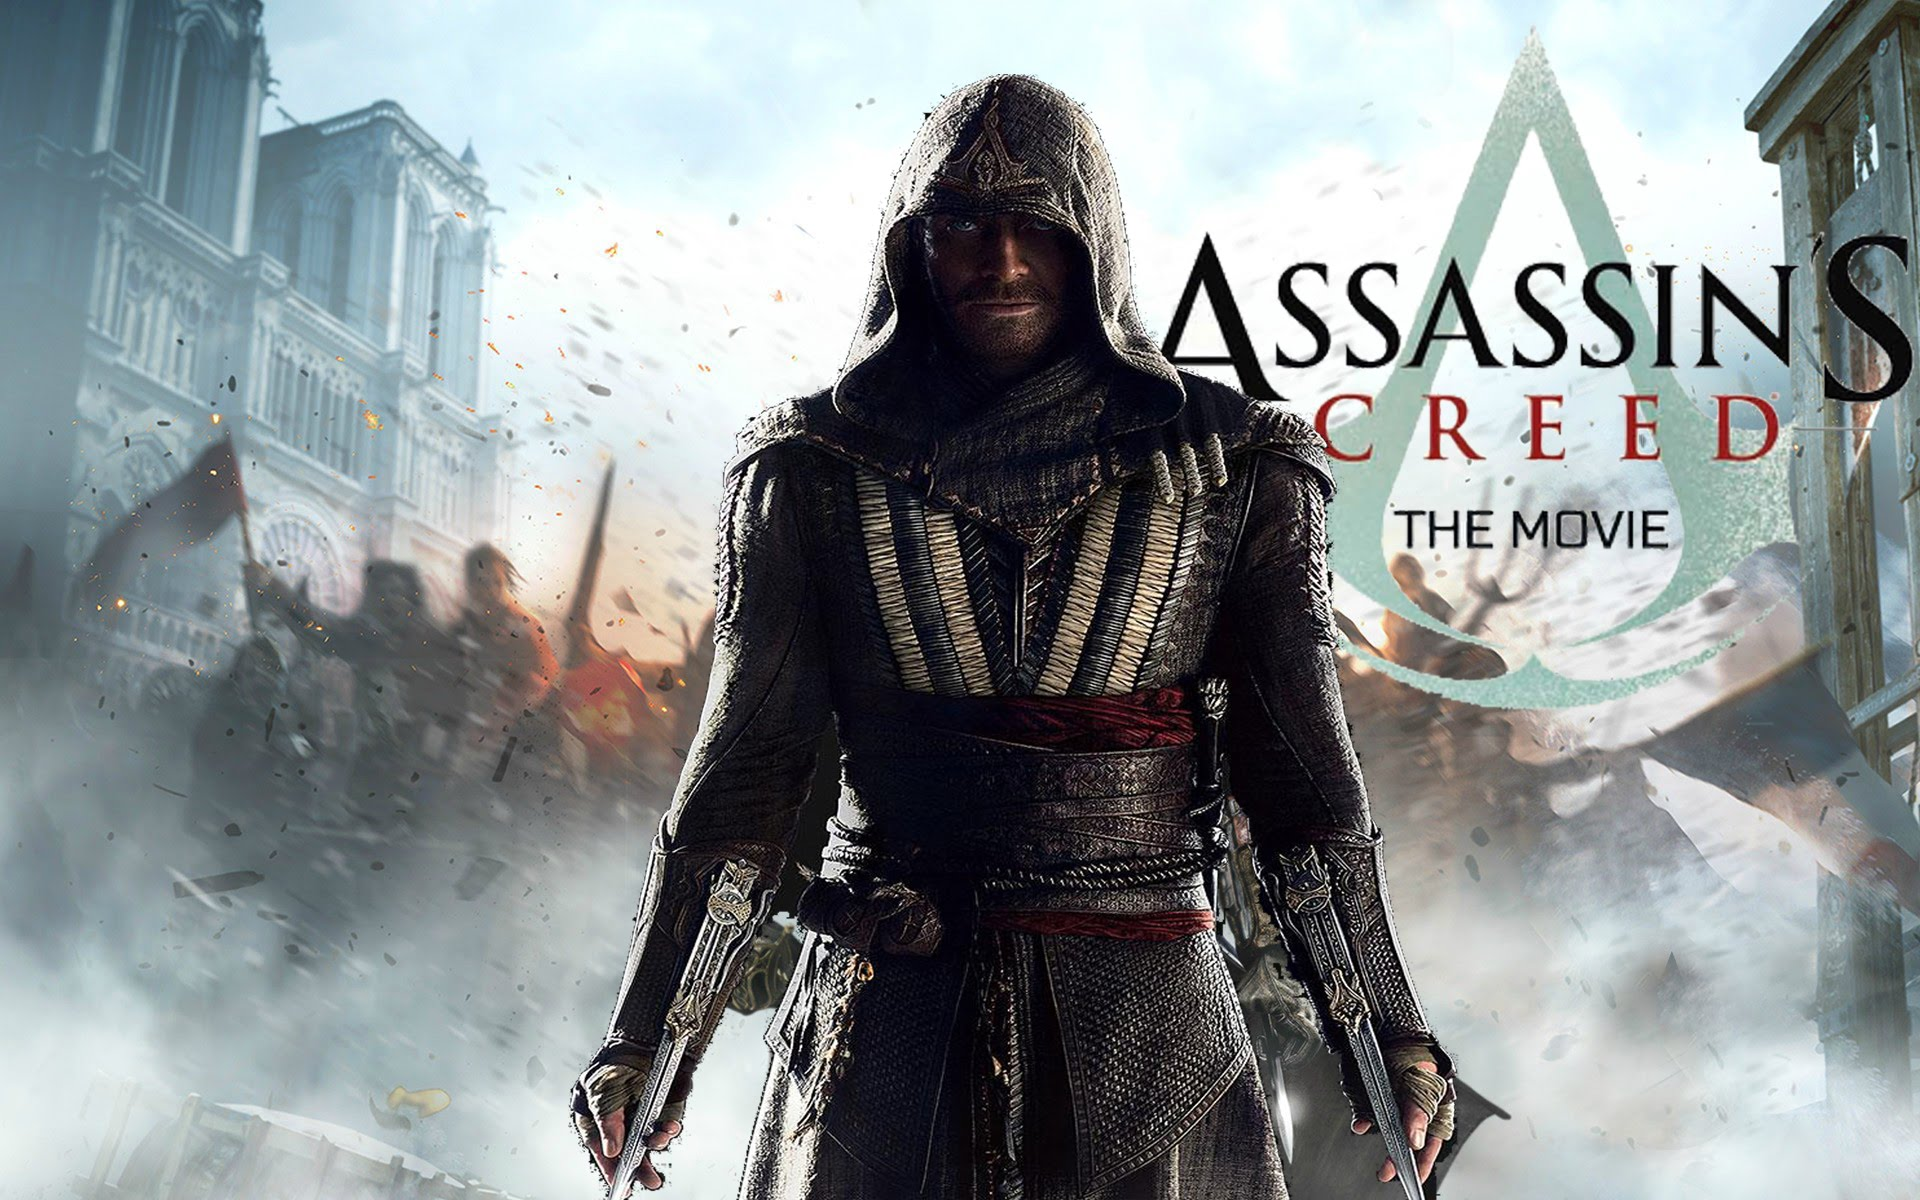 assassin's creed hd desktop wallpapers | 7wallpapers